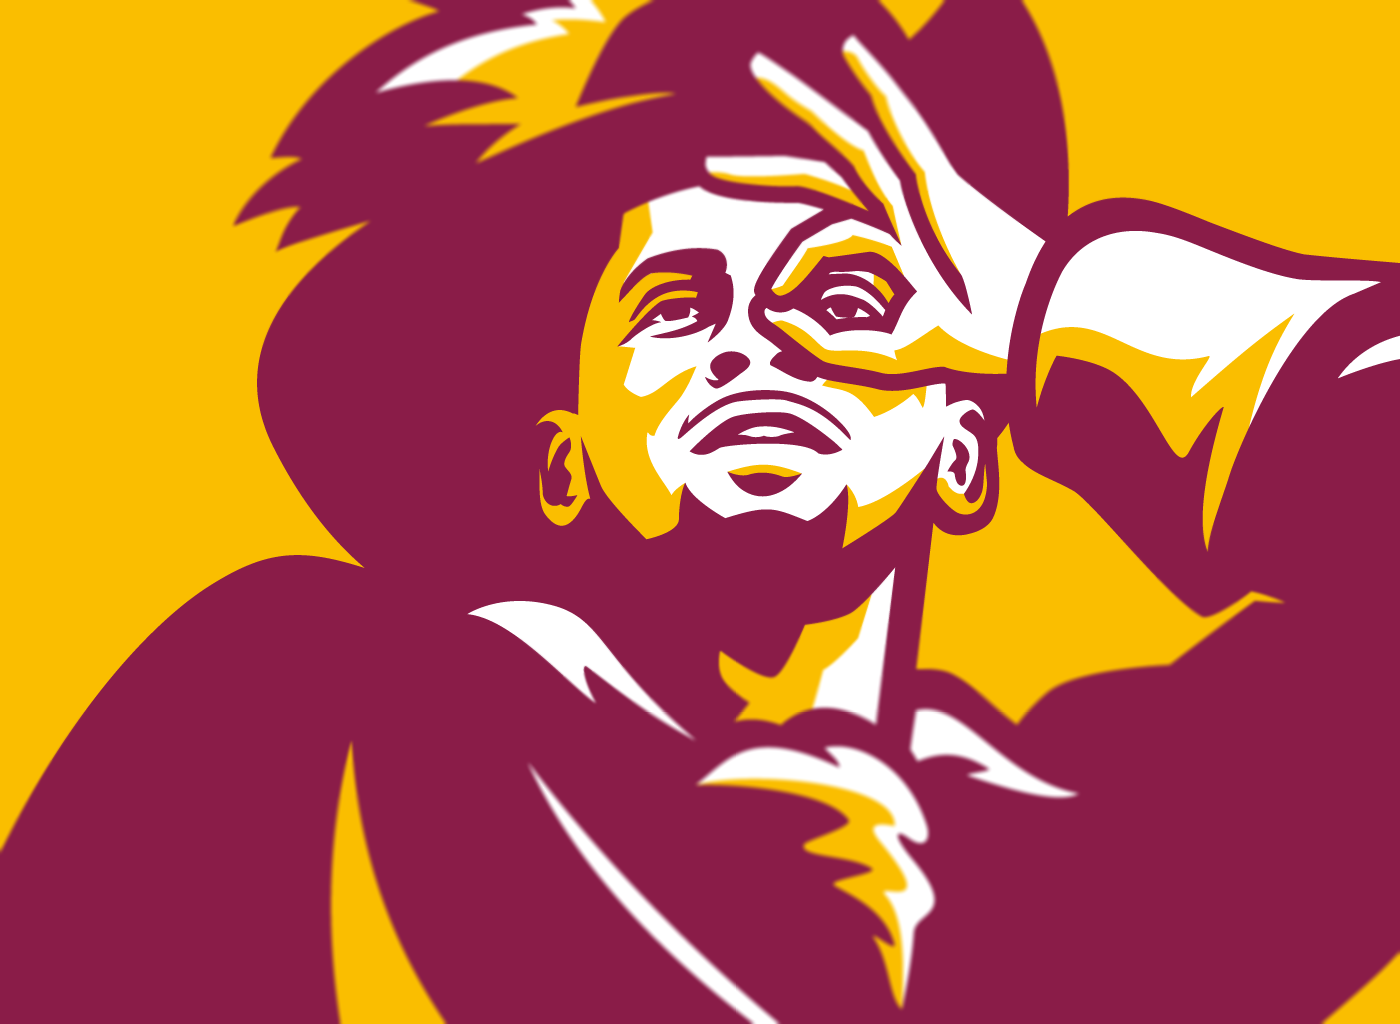 Kyrie Irving Illustration on Behance.